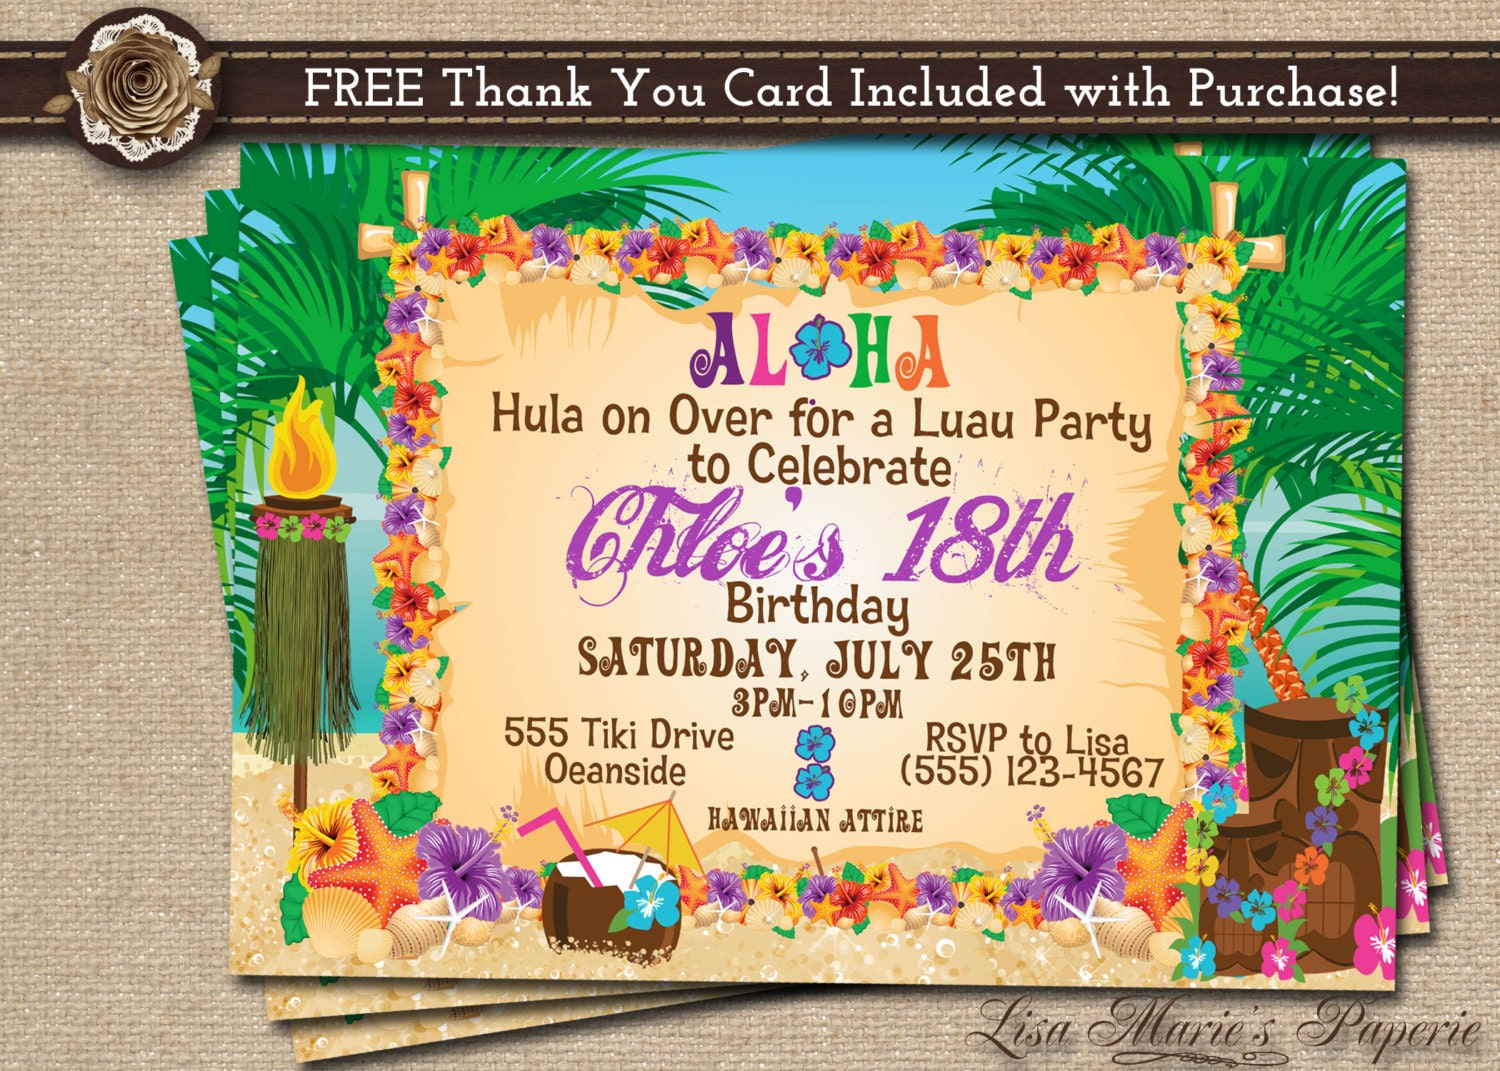 Luau Birthday Party Invitations is the best ideas you have to choose for invitation example